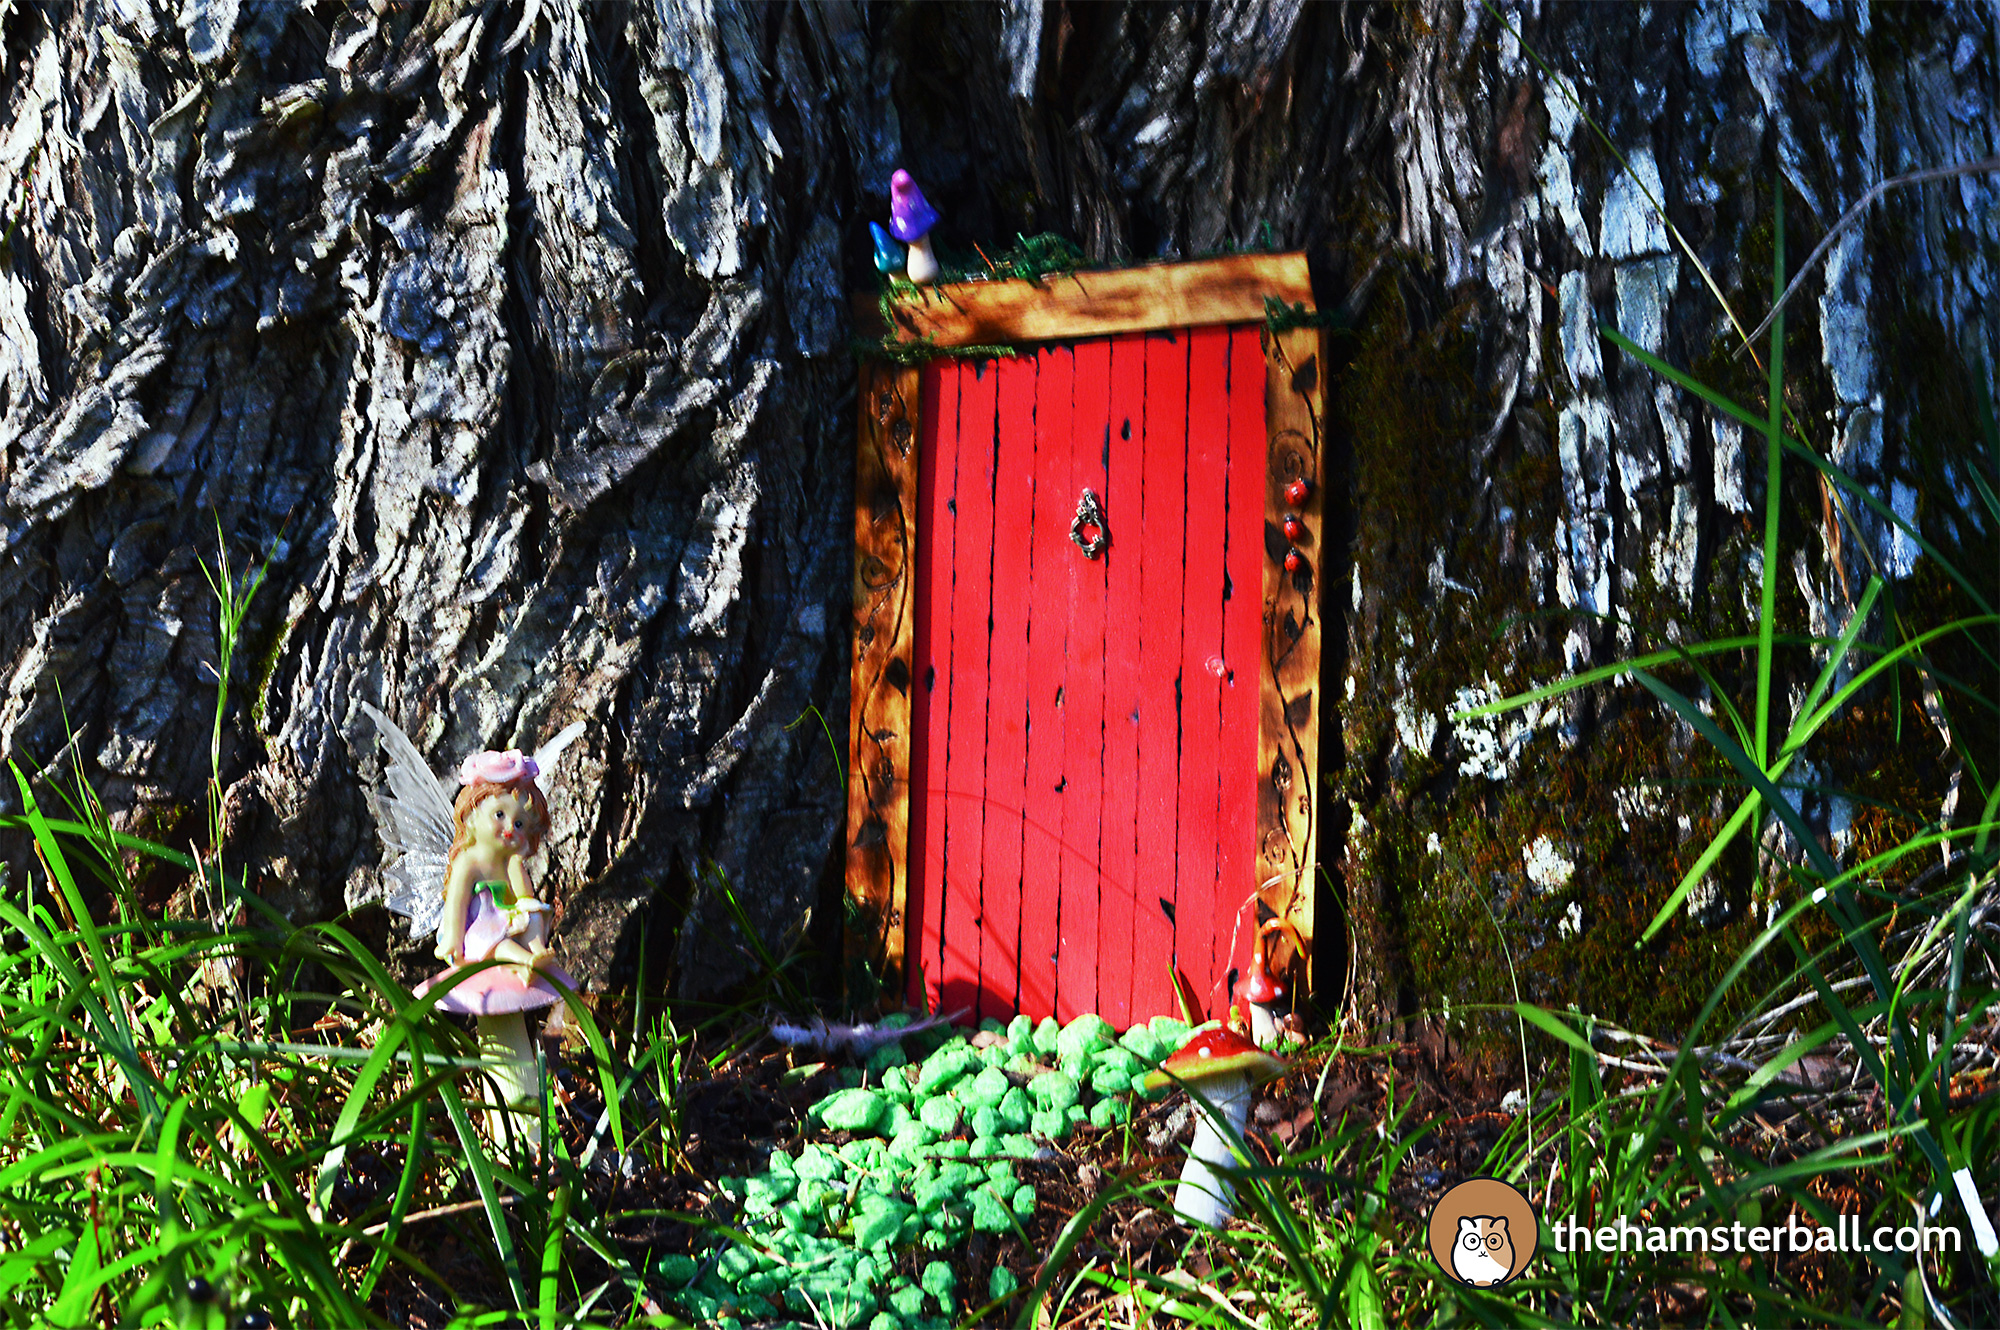 The Fudge Shop, Springbrook, Eco Sensitive, environment, red door, tree, fairy, mushroom